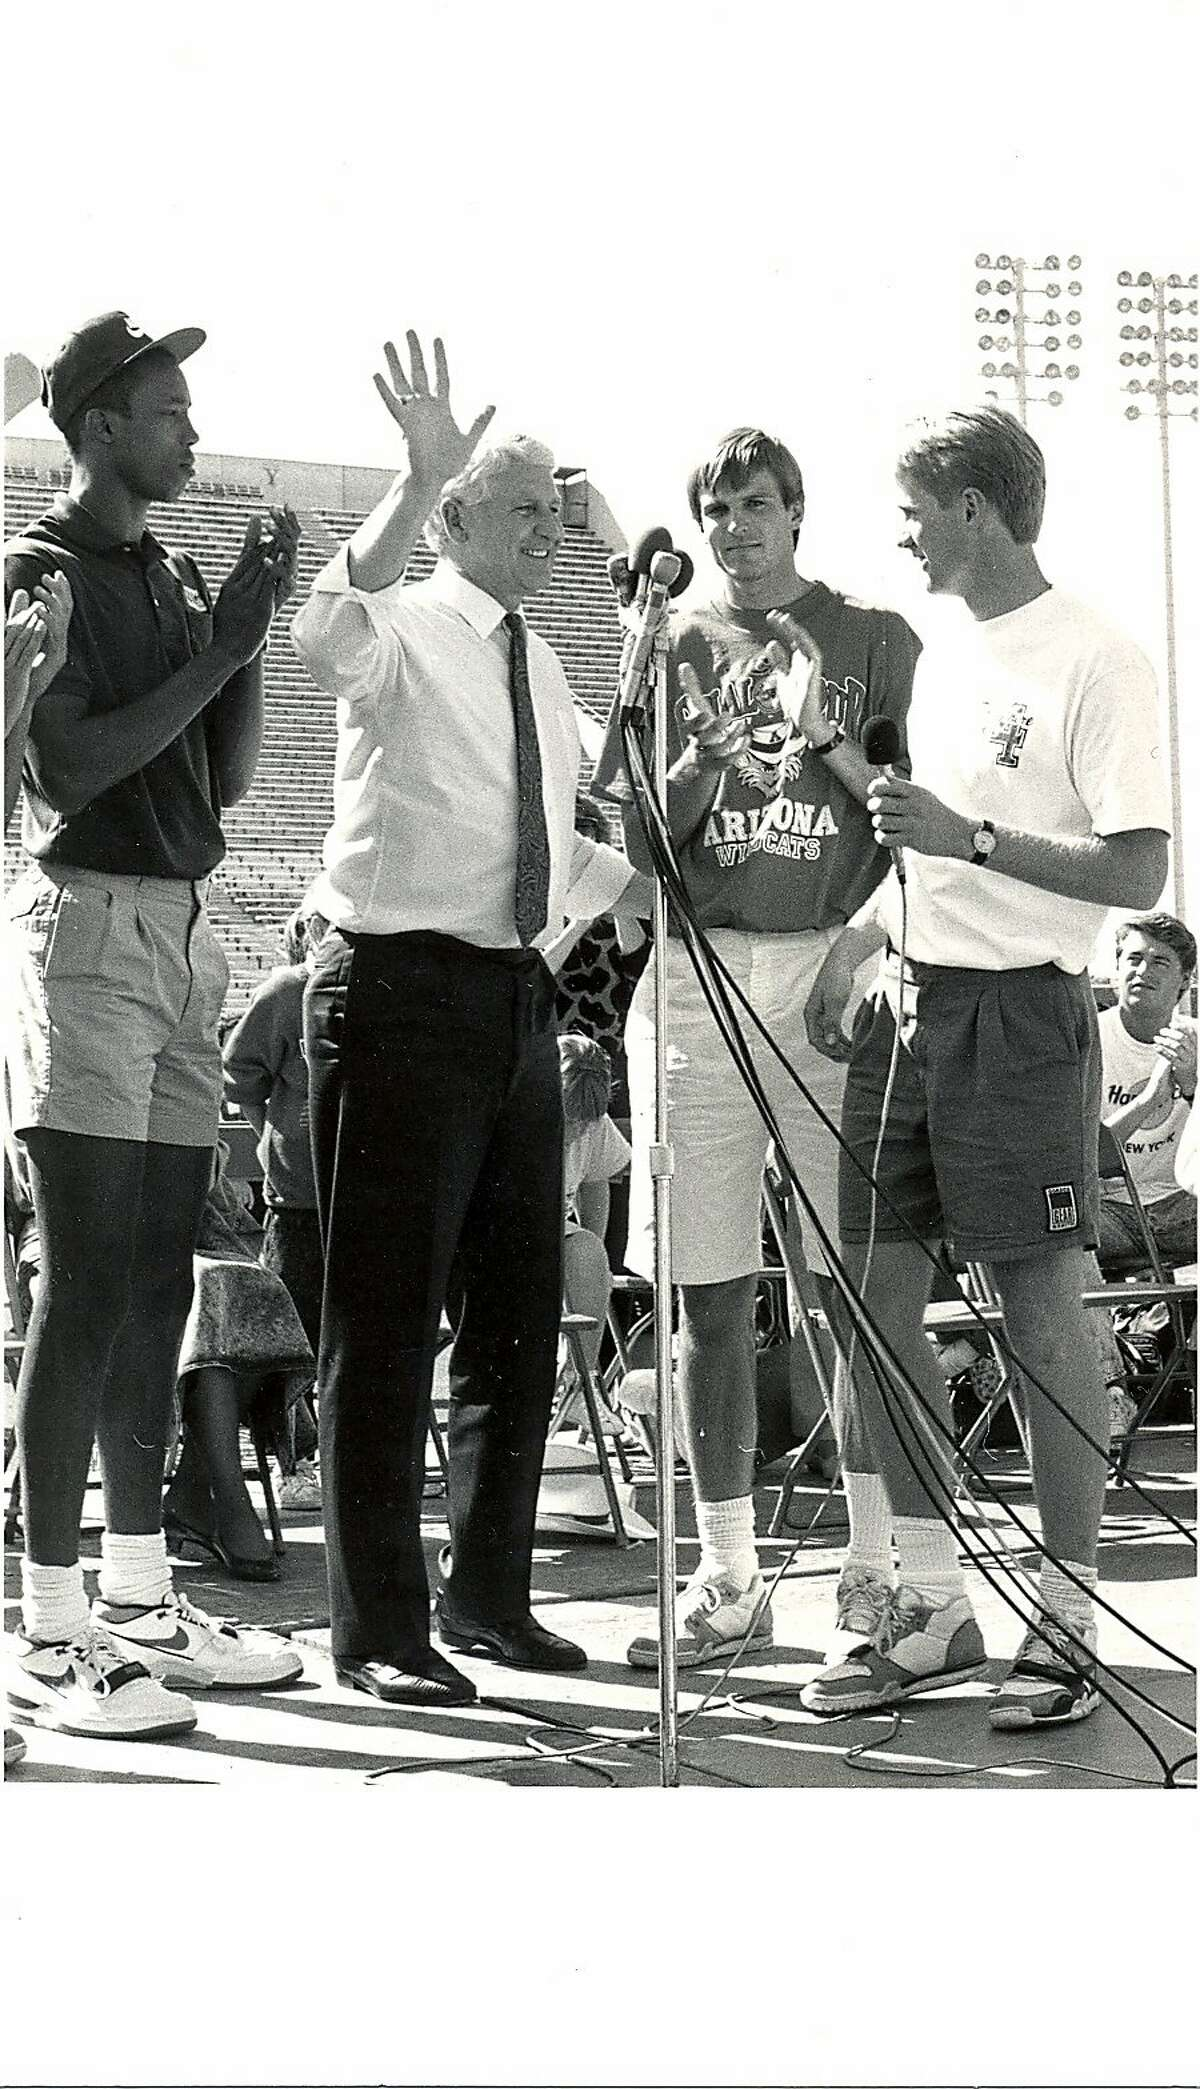 Steve Kerr and teammates stand with Lute Olson during�a rally and parade for the men's basketball team at University of Arizona stadium in Tucson, Ariz., after the 1988 NCAA Final Four.